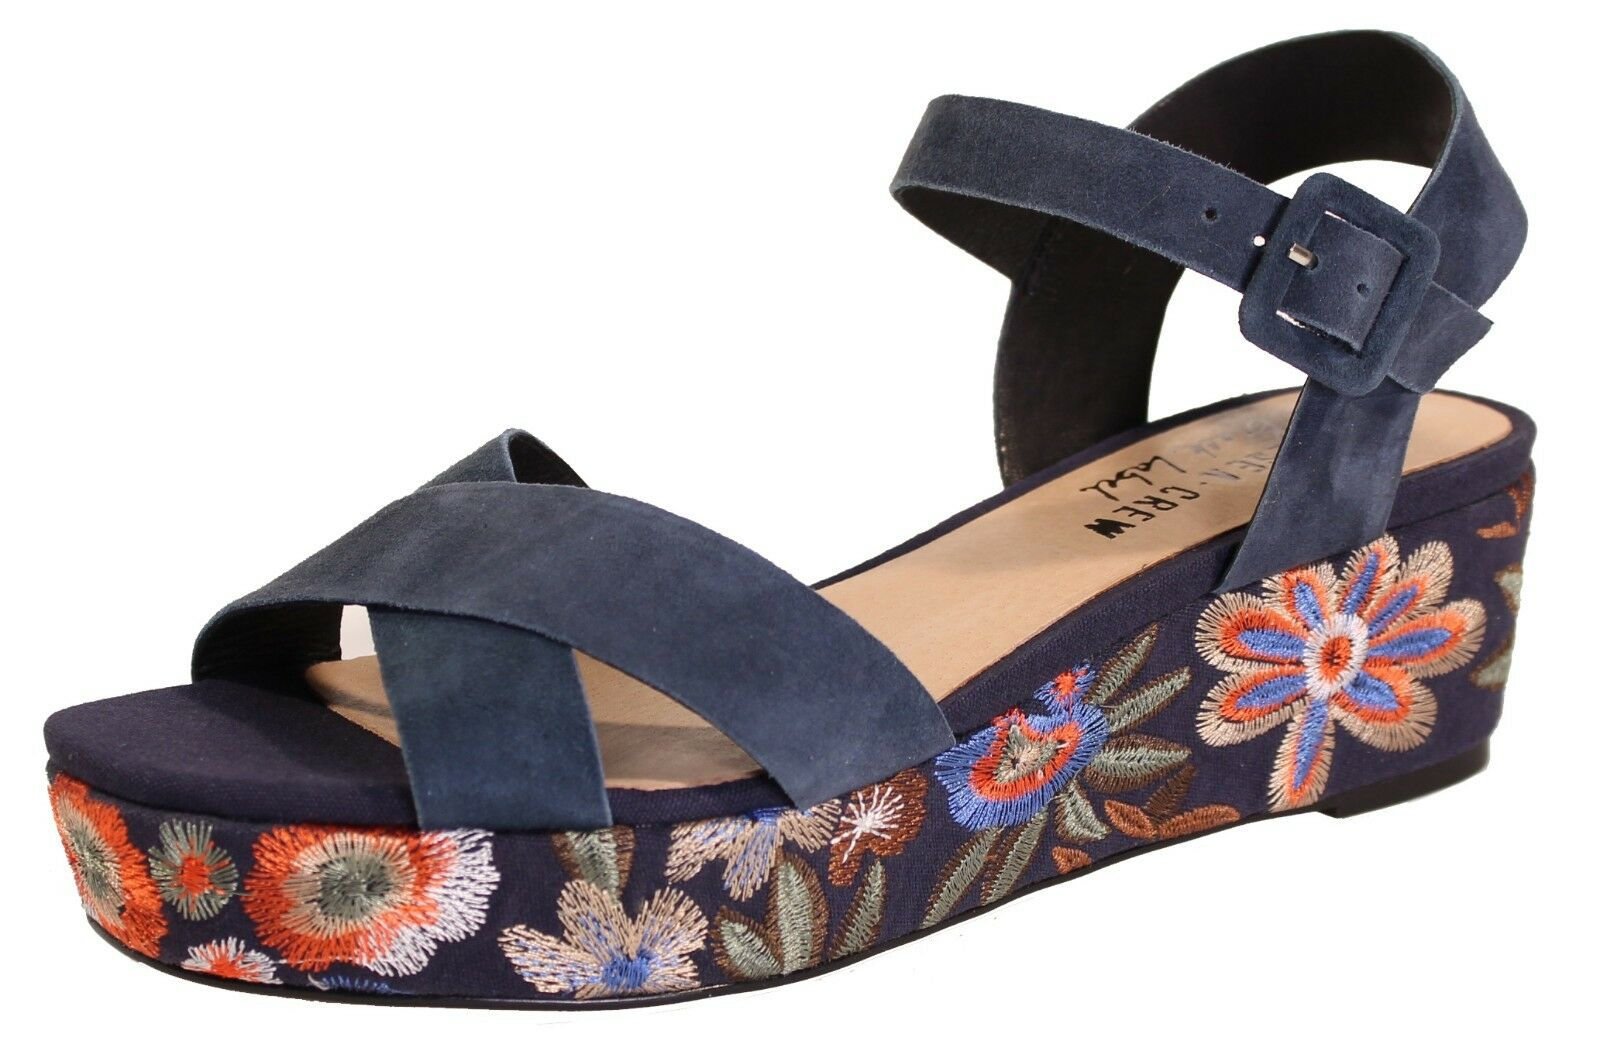 Kenneth Cole REACTION Women's Tole Booth Heeled Sandal - Choose SZ/Color